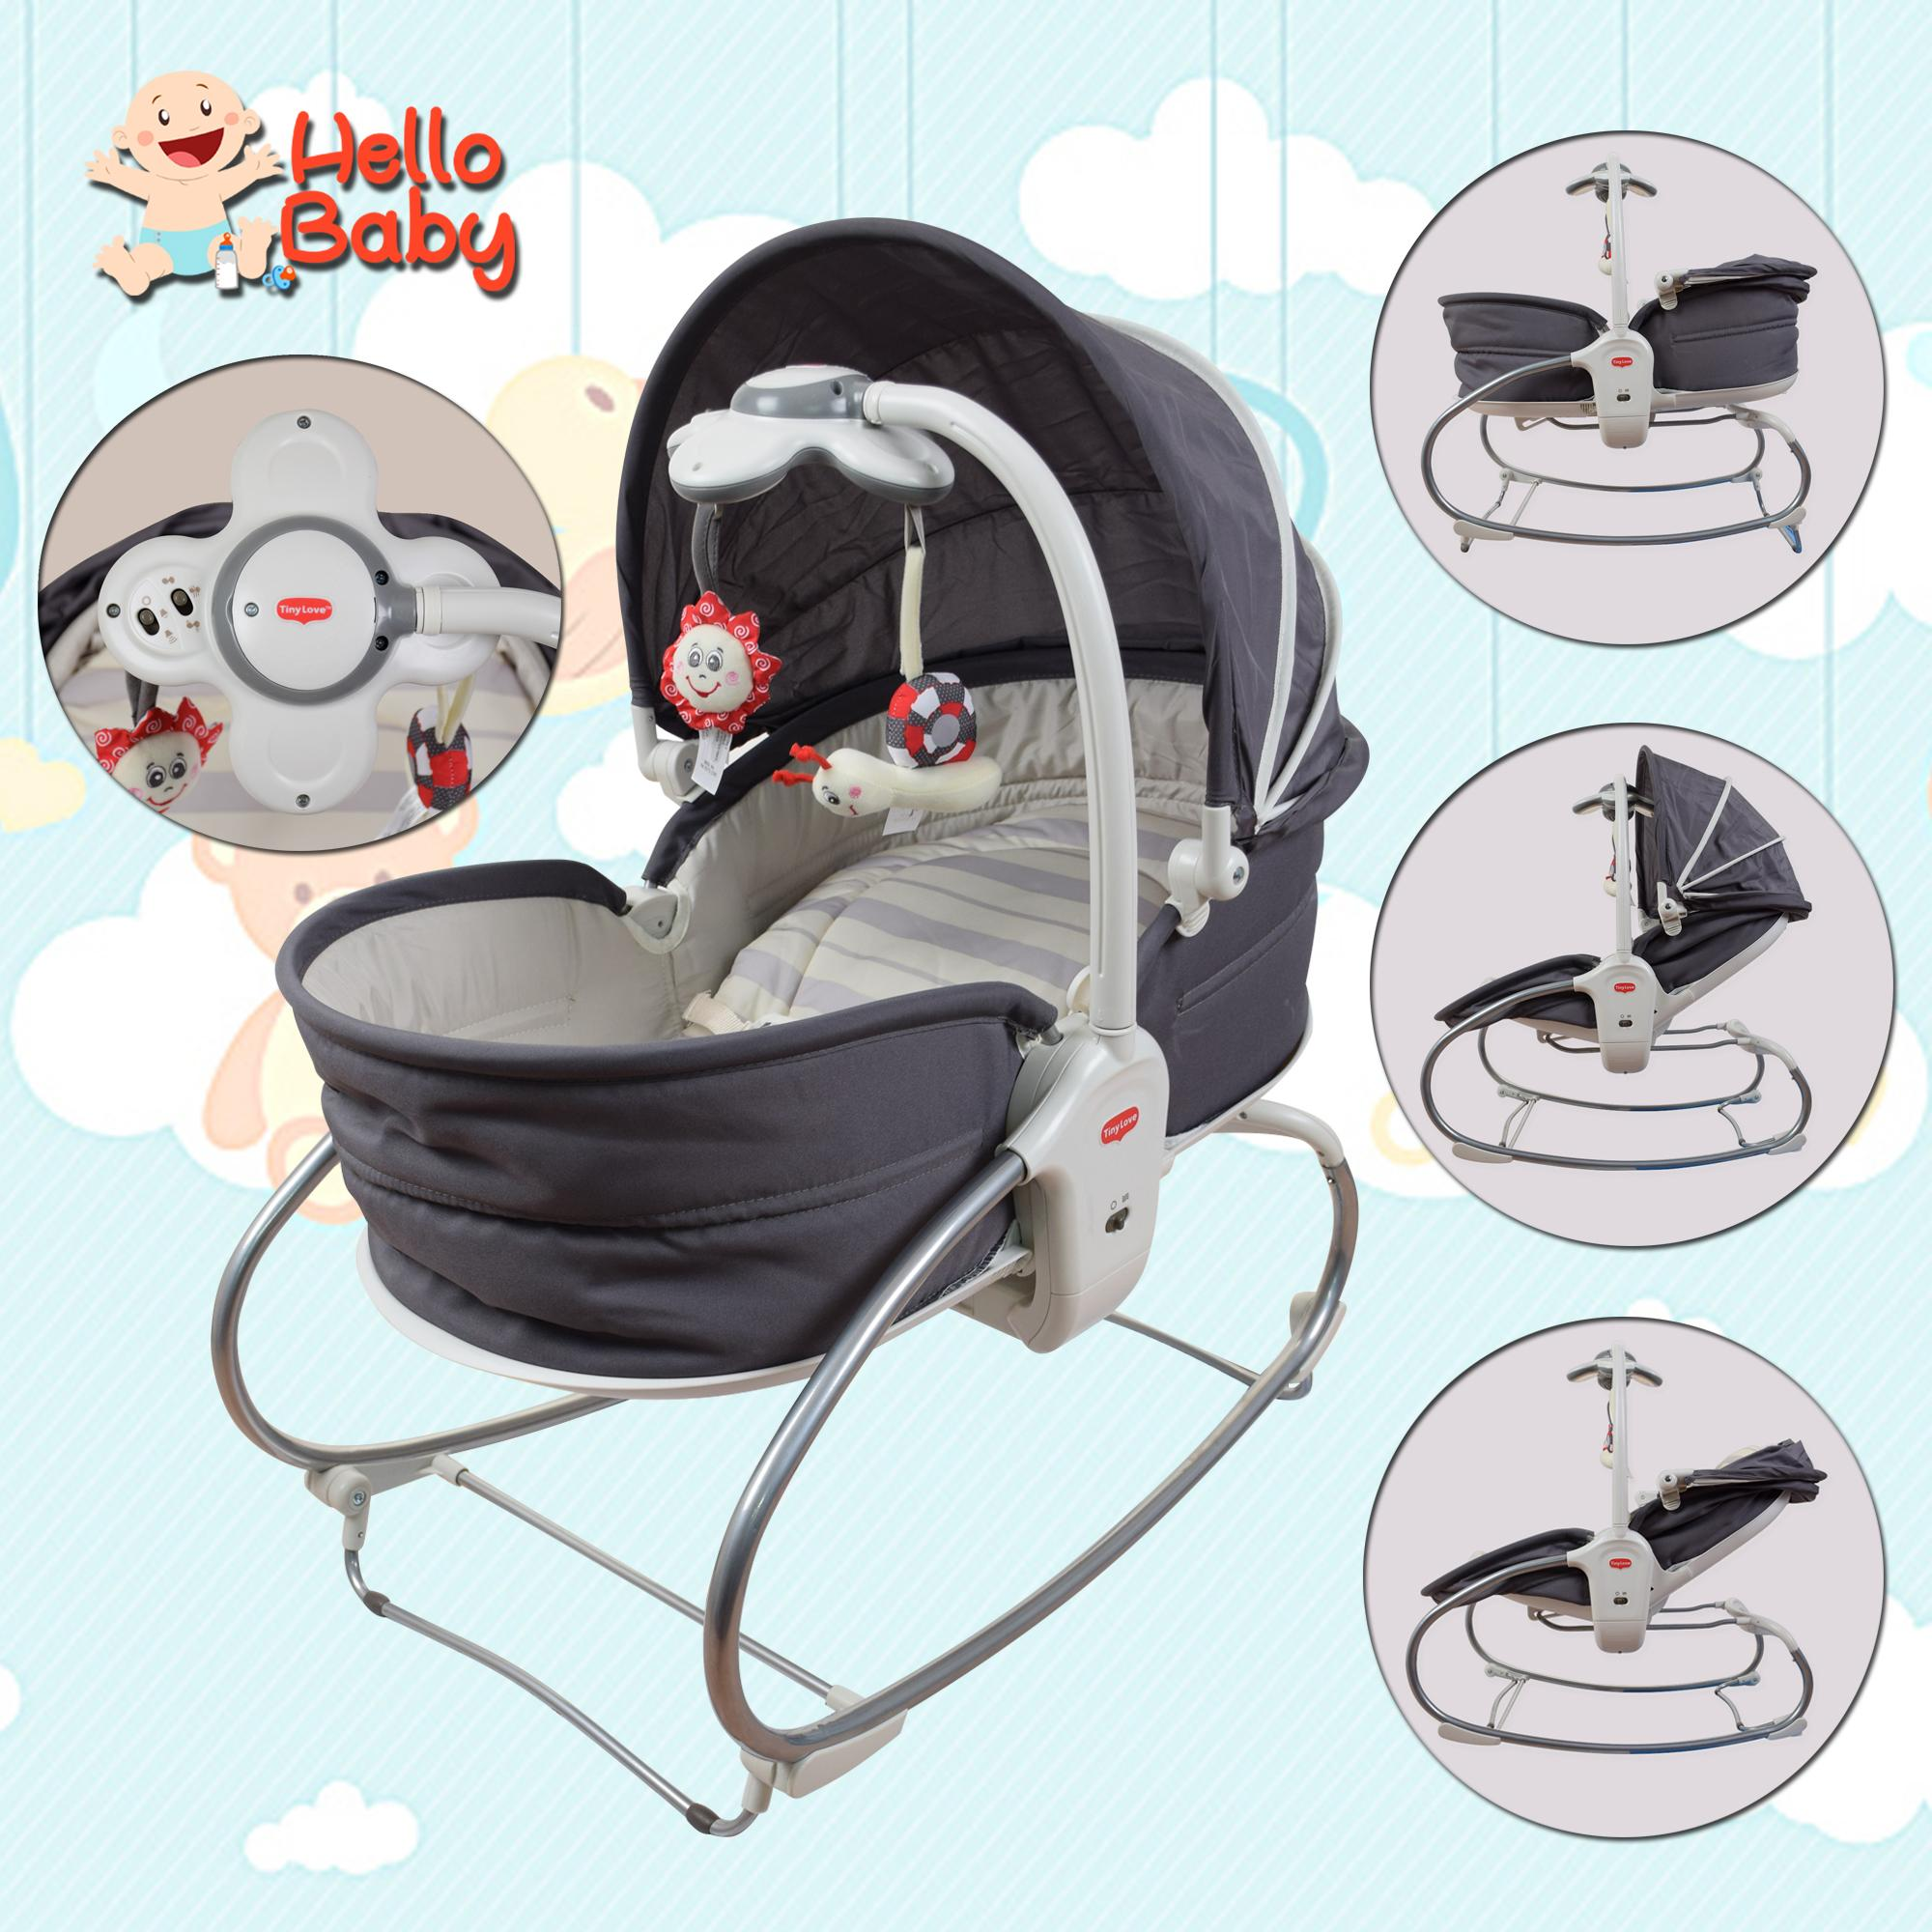 Hello Baby Tiny Love Cozy 3in1 Rocker-Napper By Hello Baby.